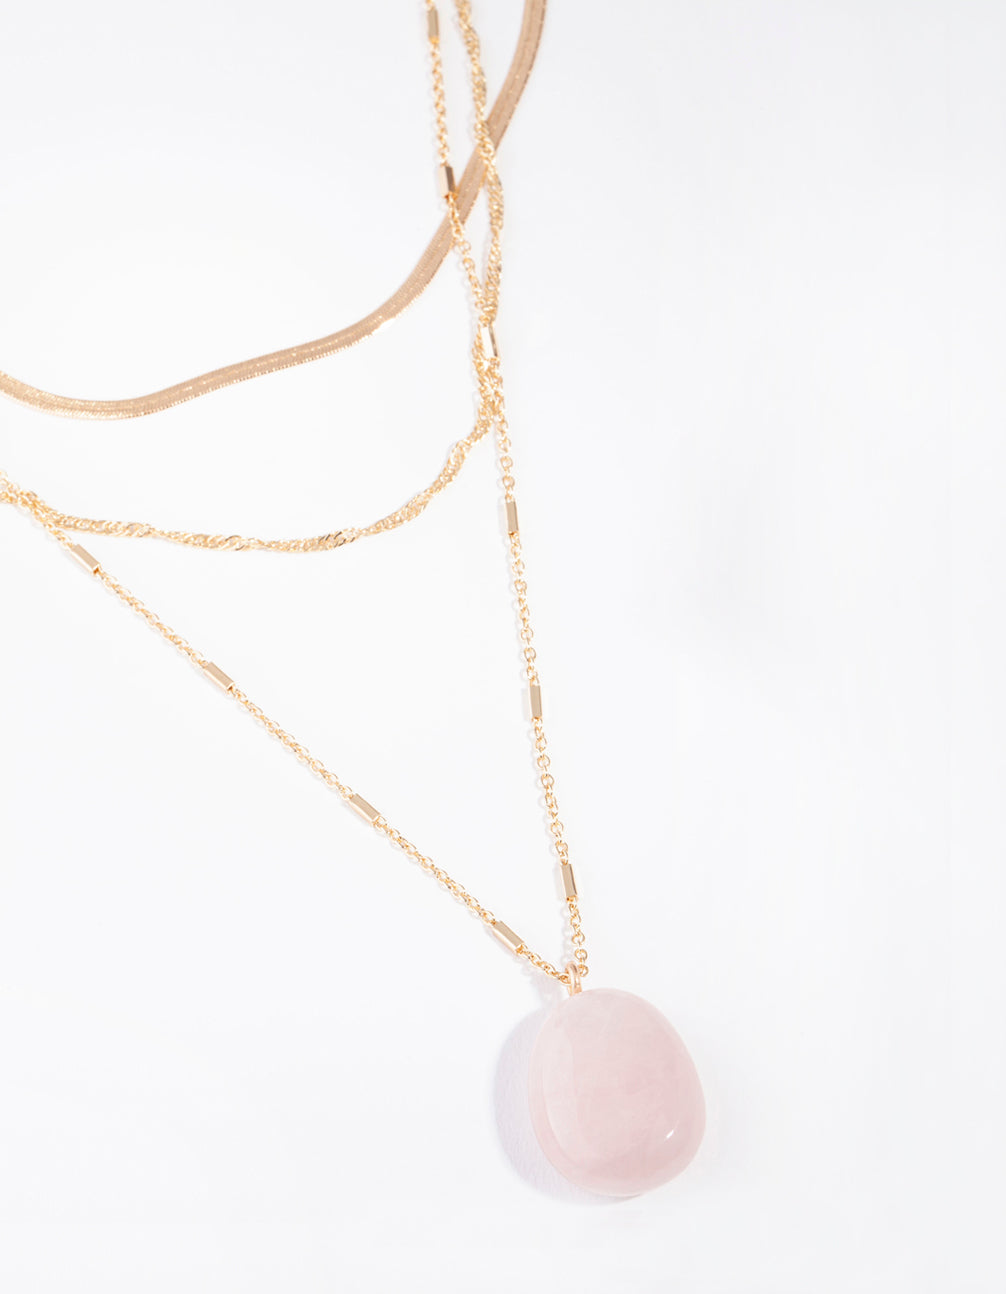 Gold Flat Chain Rose Quartz Stone Layered Necklace